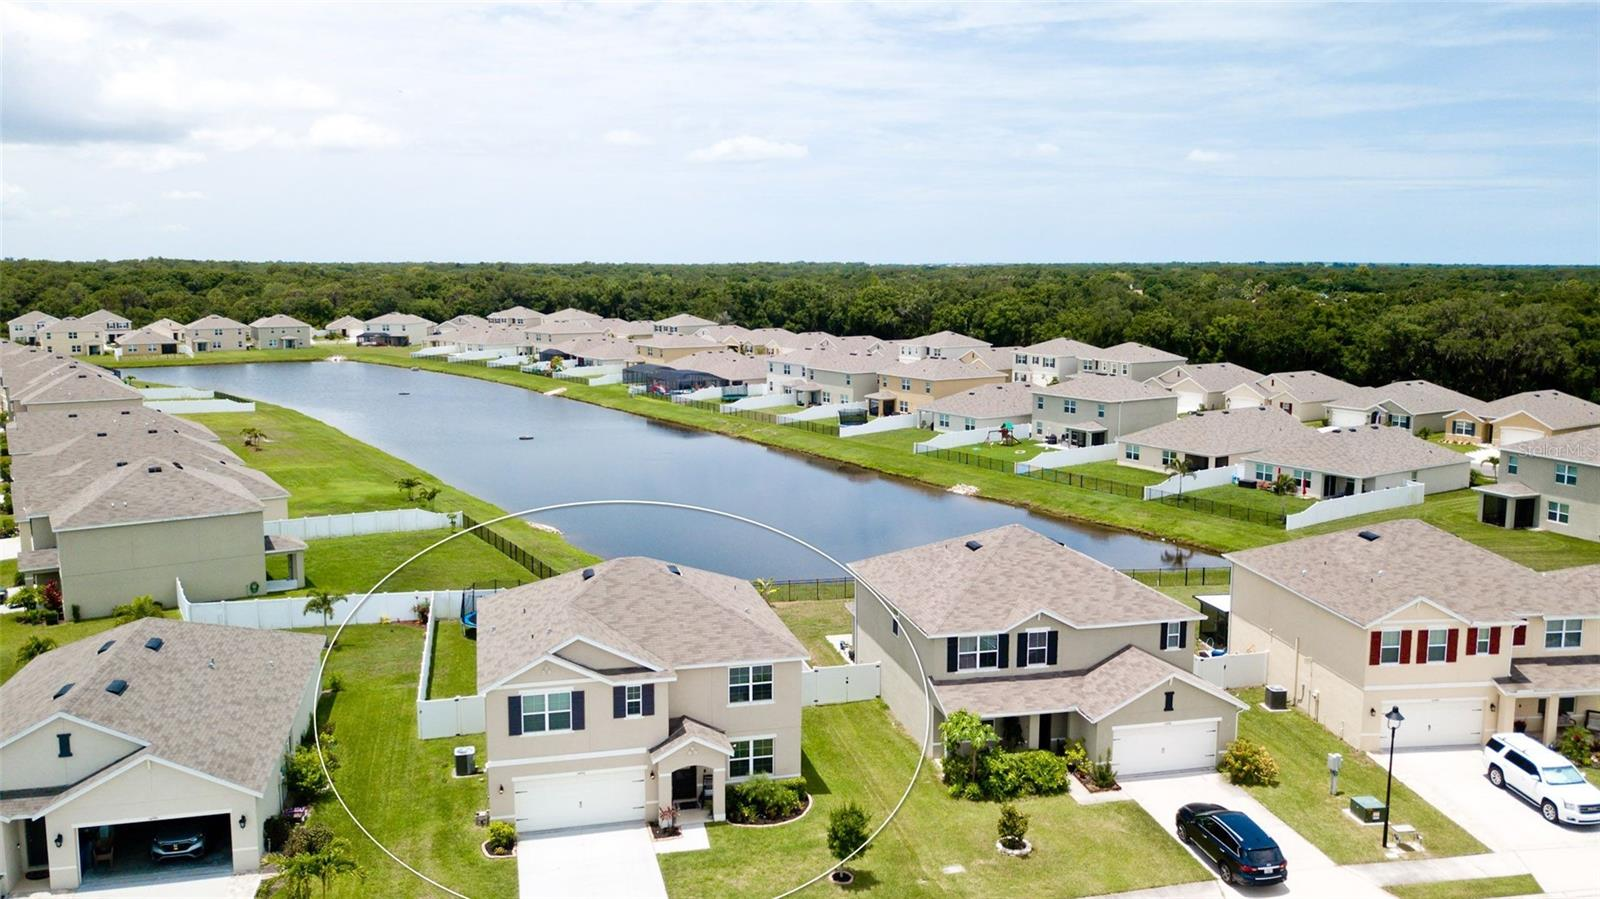 Primary photo of recently sold MLS# A4504933